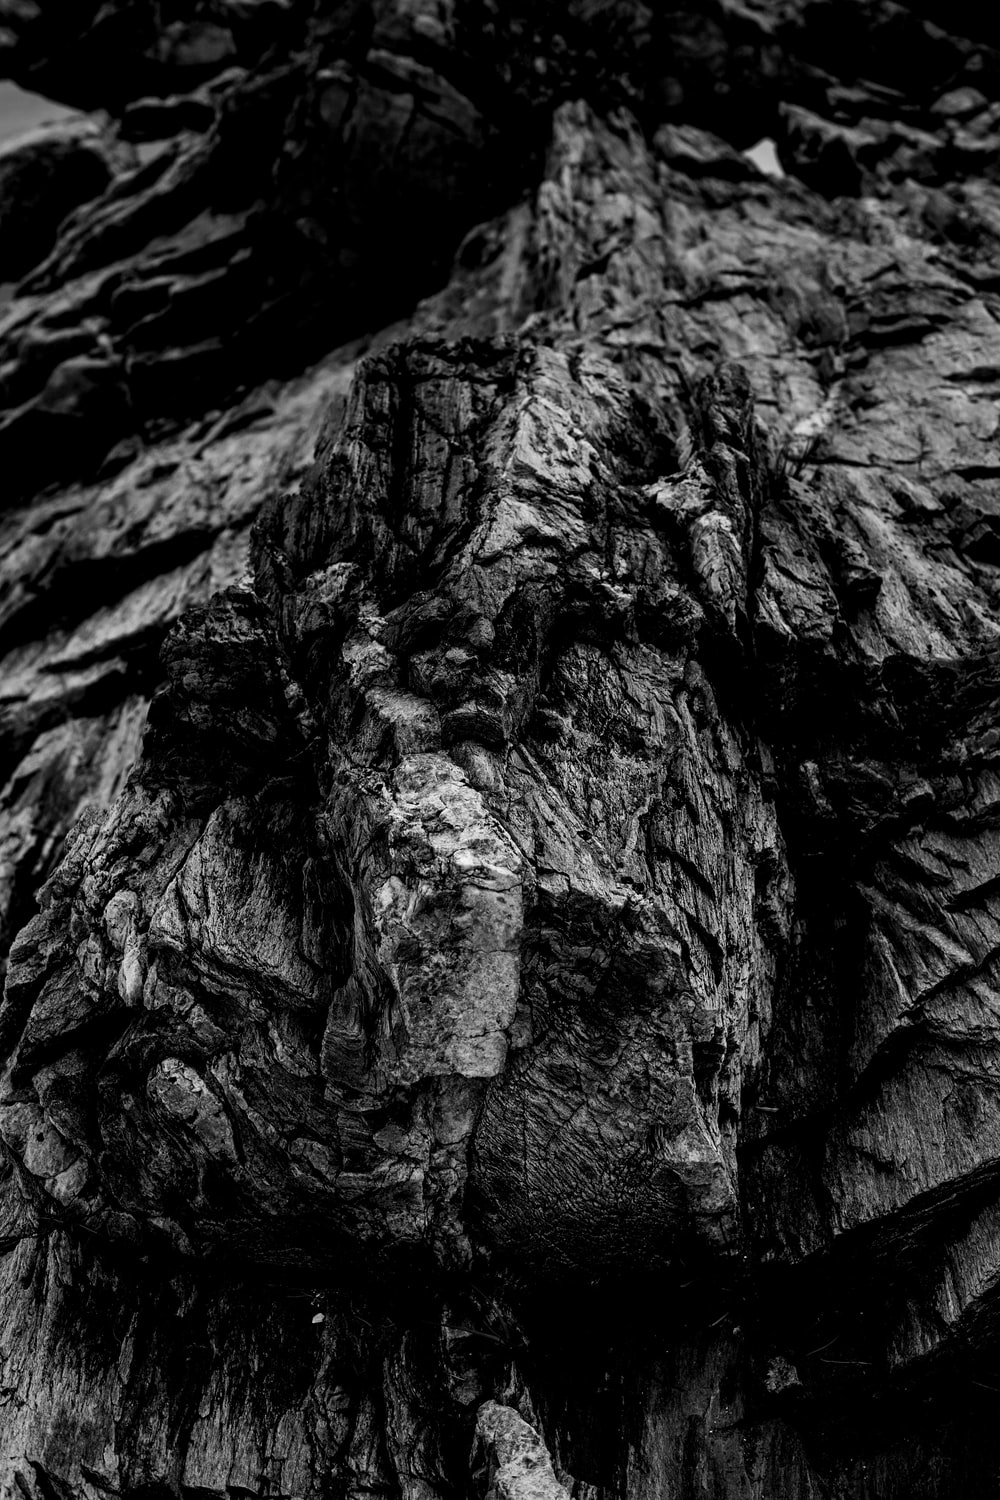 grayscale photo of rock